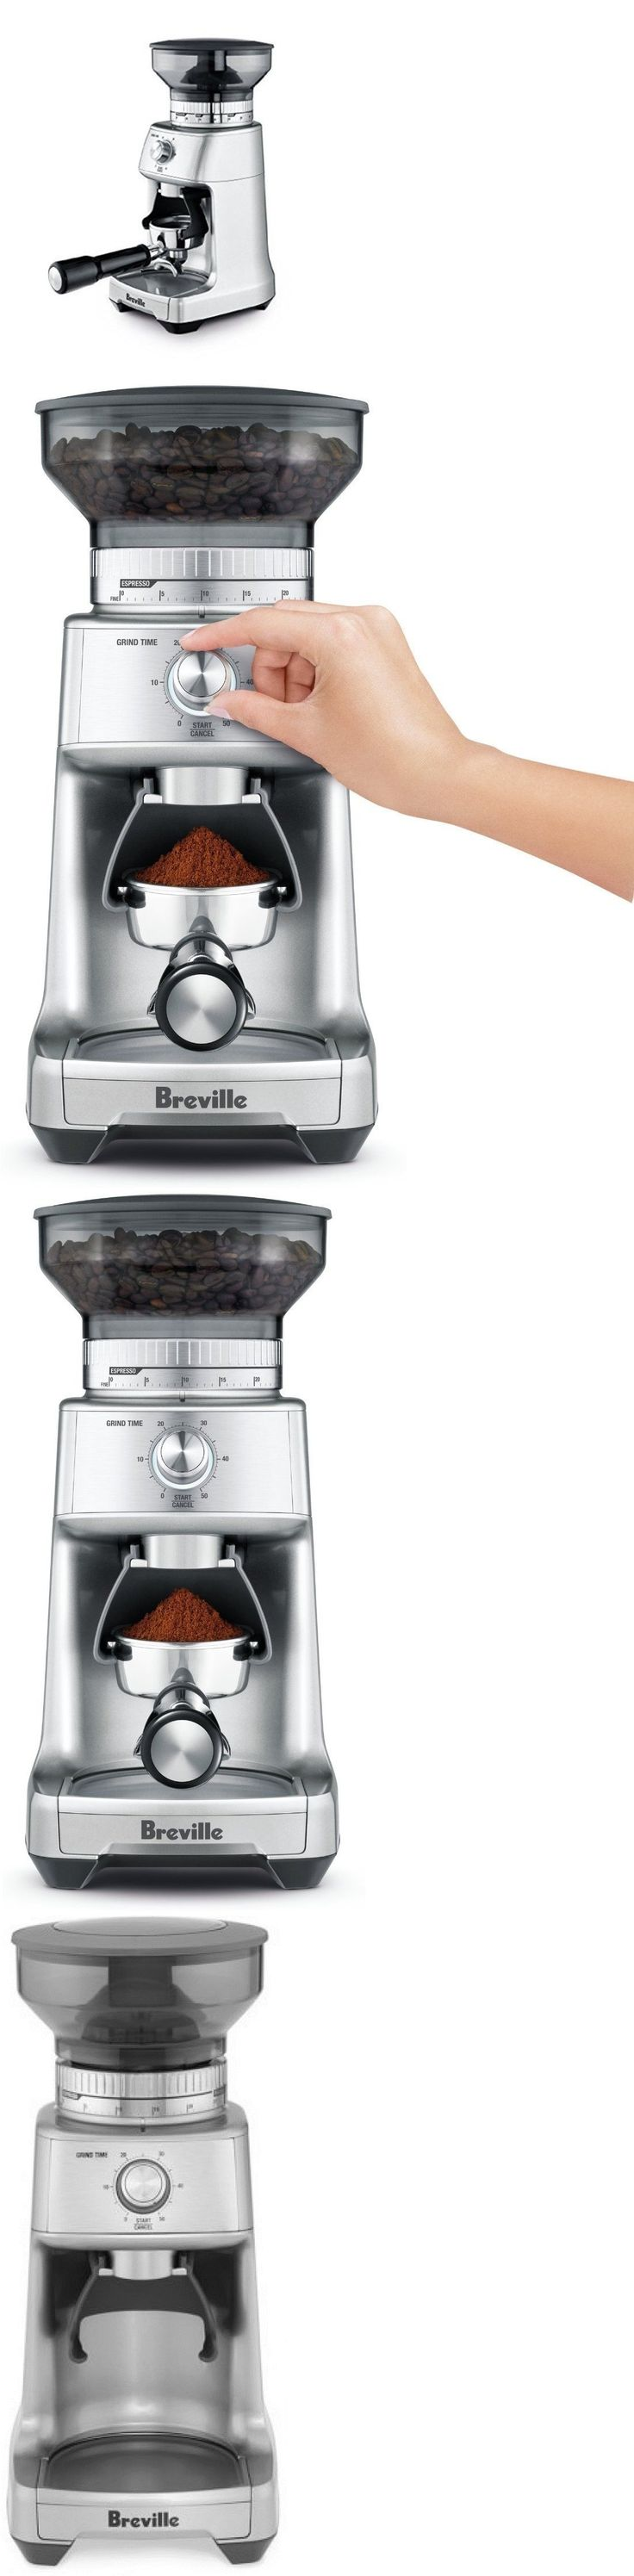 Coffee Grinders 32882: Coffee Makers With Grinders Breville Professional  Espresso Machine French Press >